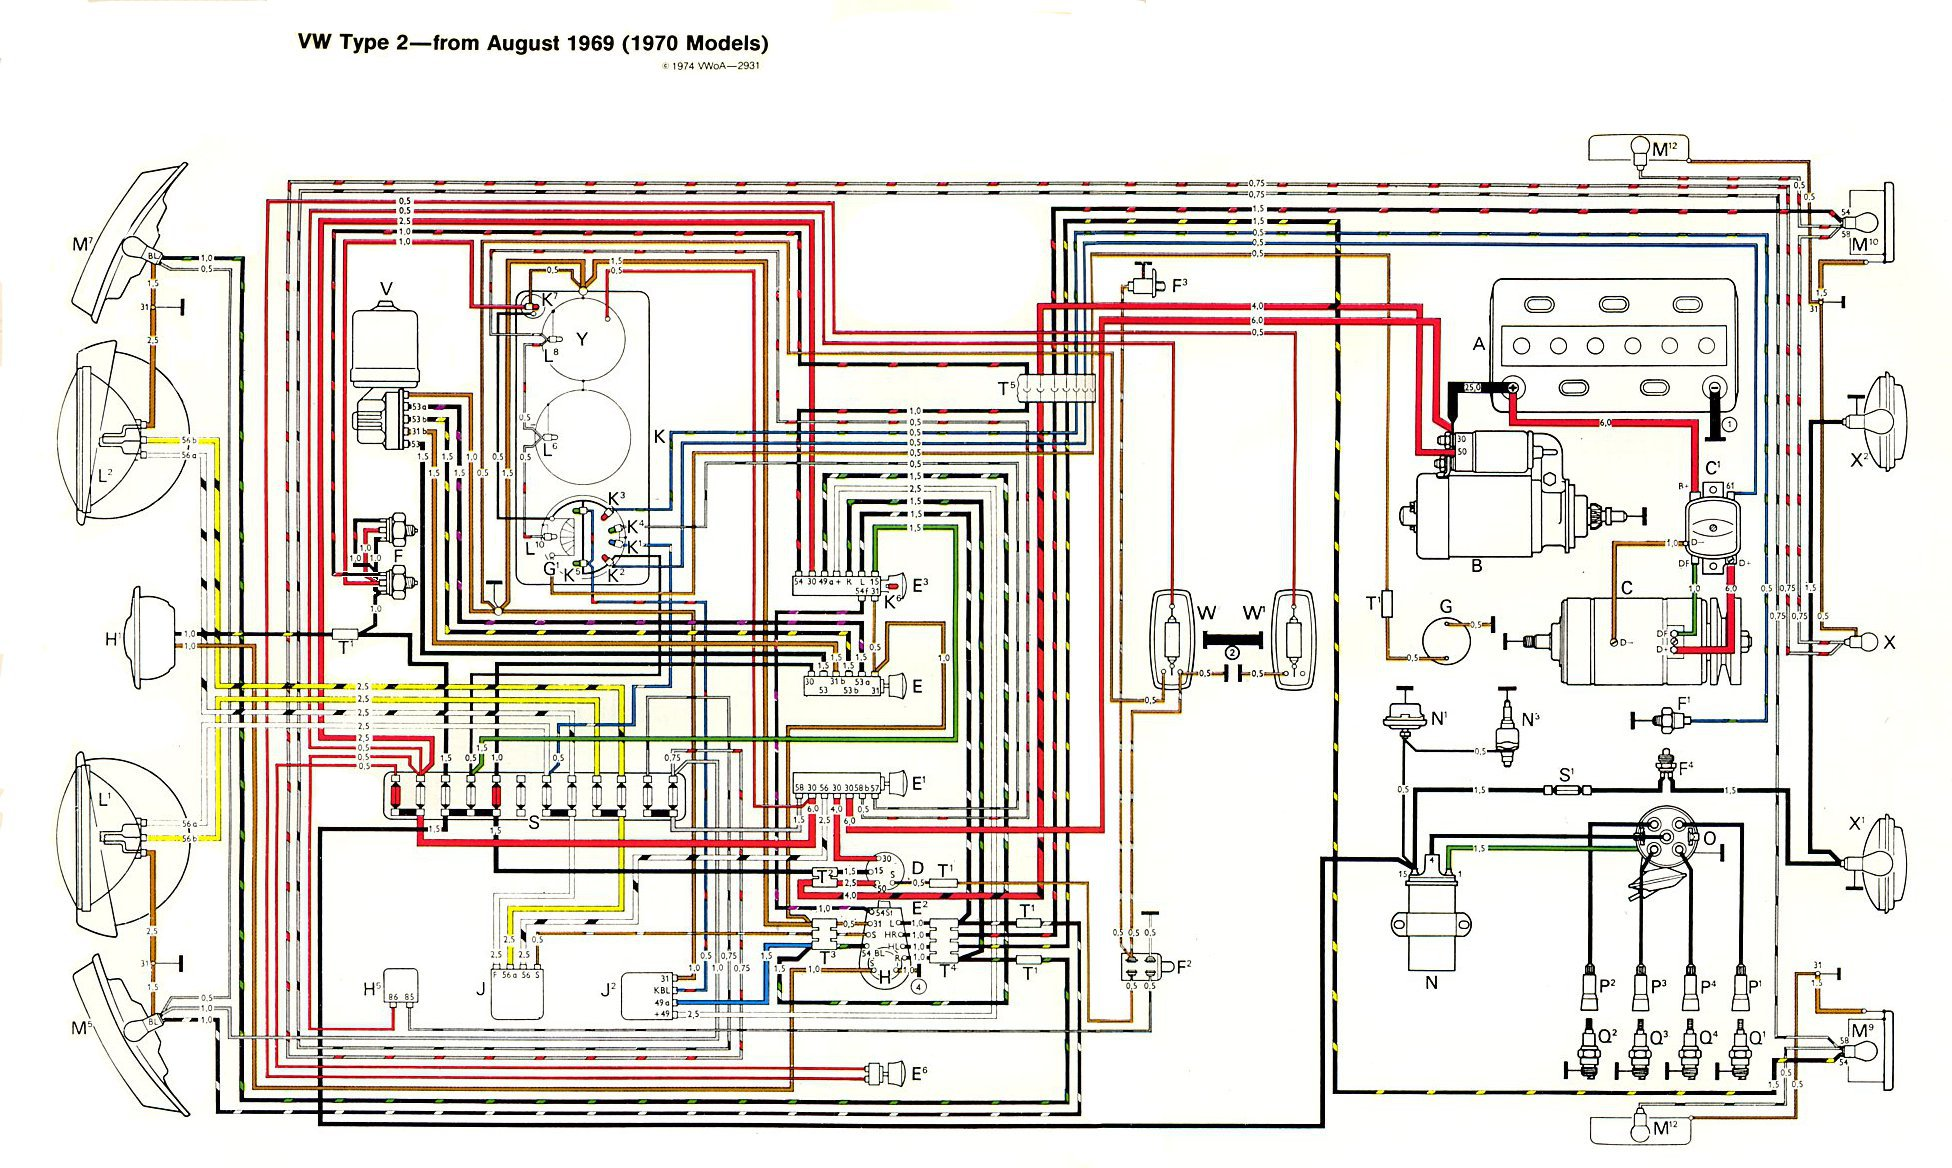 Mk3 Vw Wiring Diagram Light Switch Content Resource Of 1973 Bus Detailed Schematics Rh Jppastryarts Com Headlight